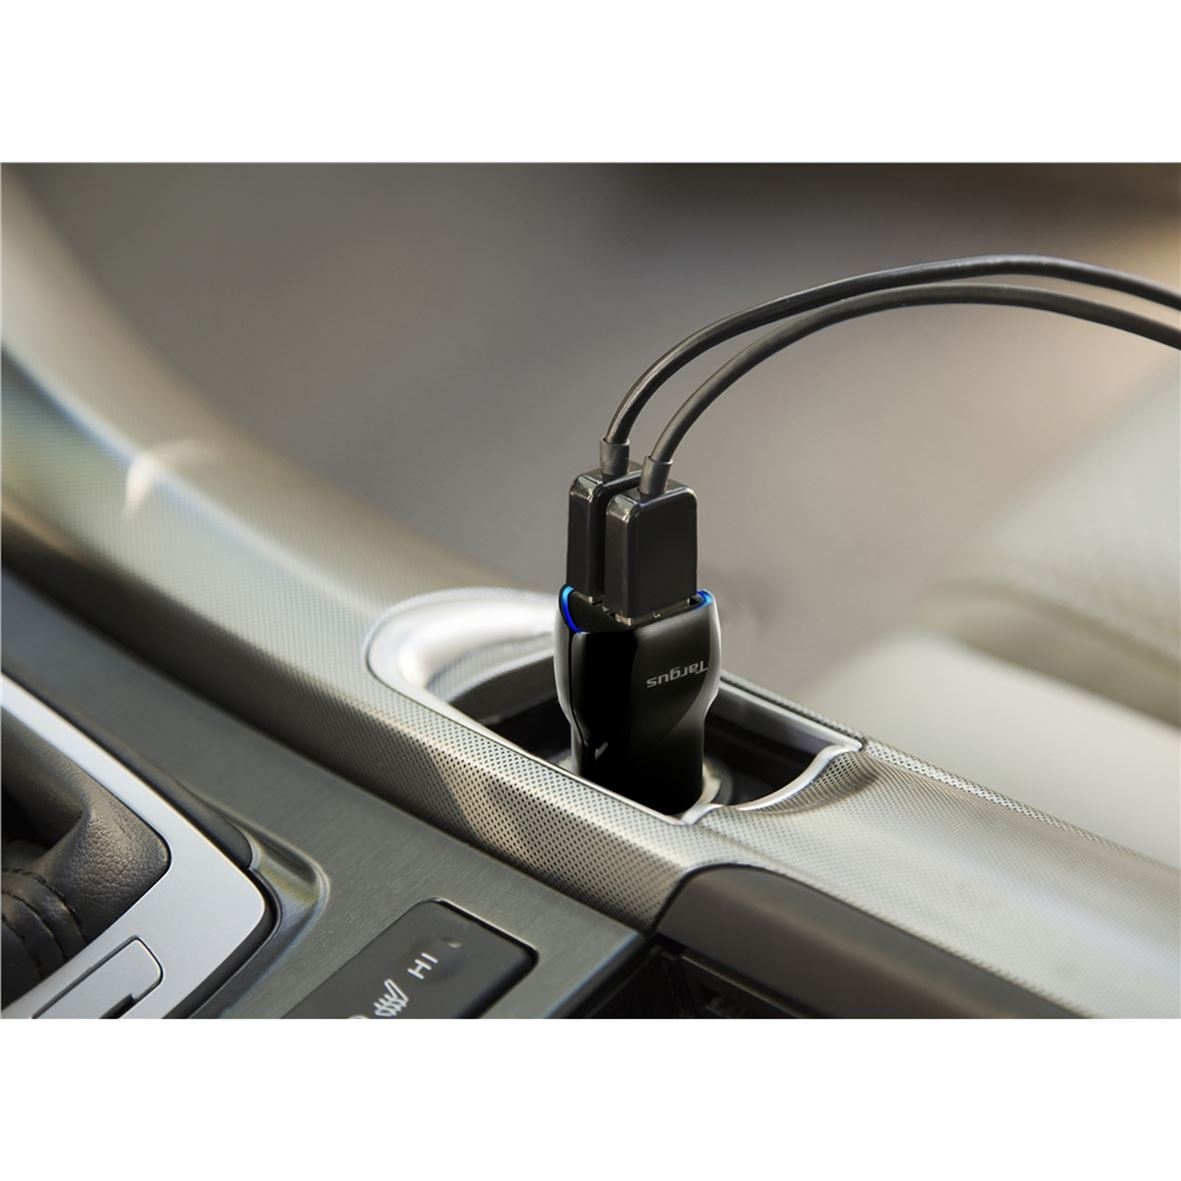 Dual Usb Car Charger For Media Tablets Amp Mobile Phones